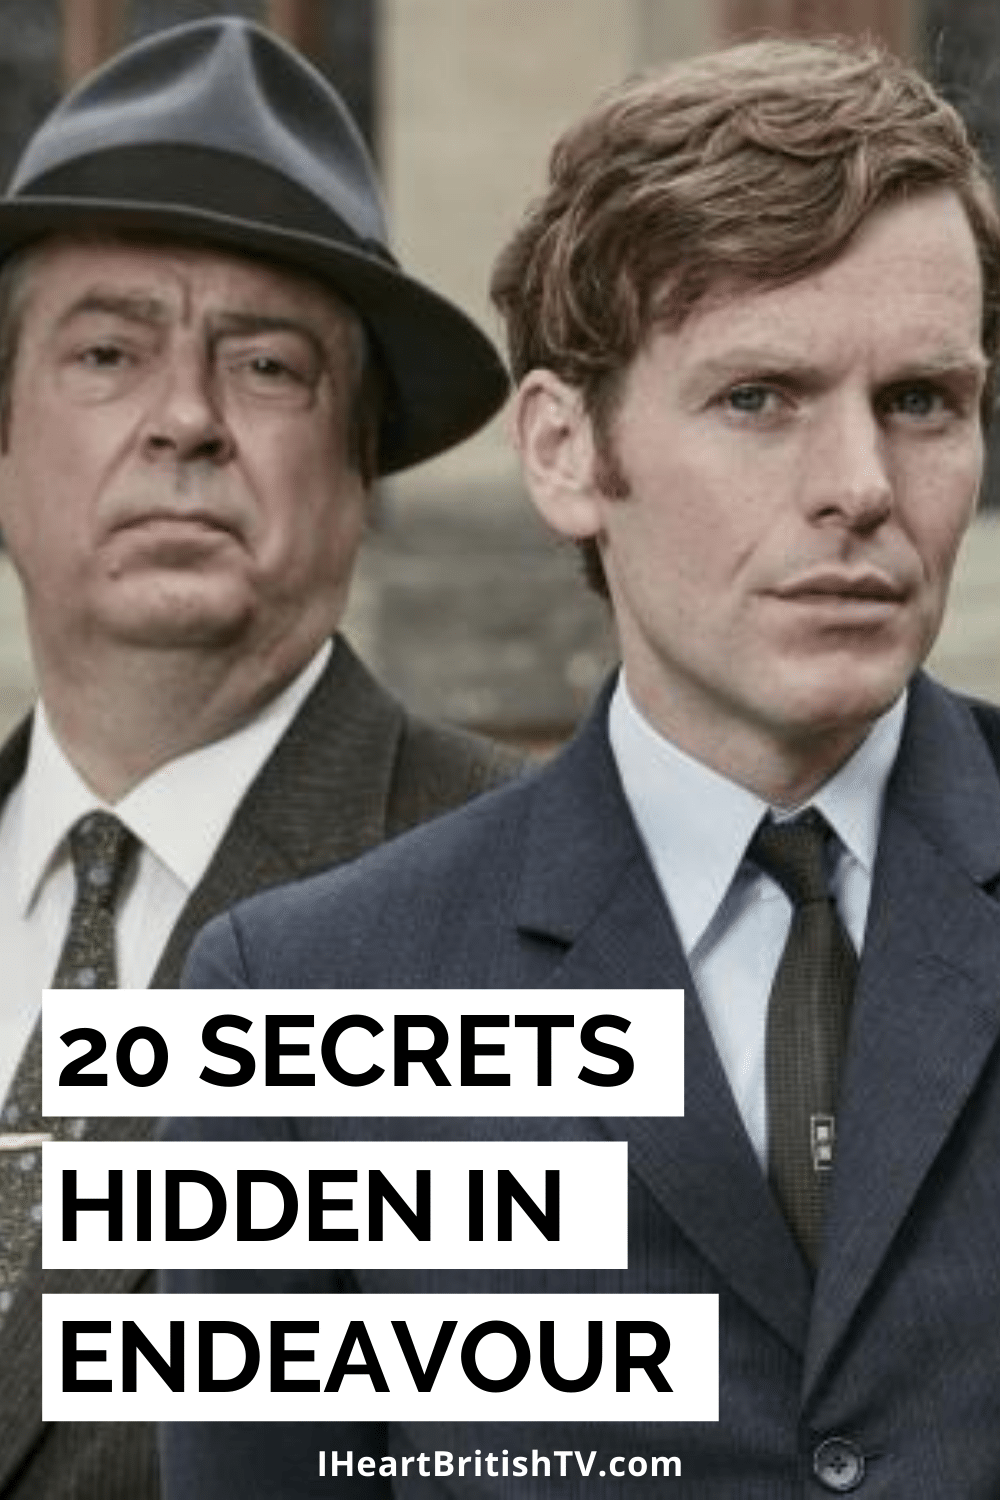 20 Hidden Secrets You May Have Missed in Endeavour 16